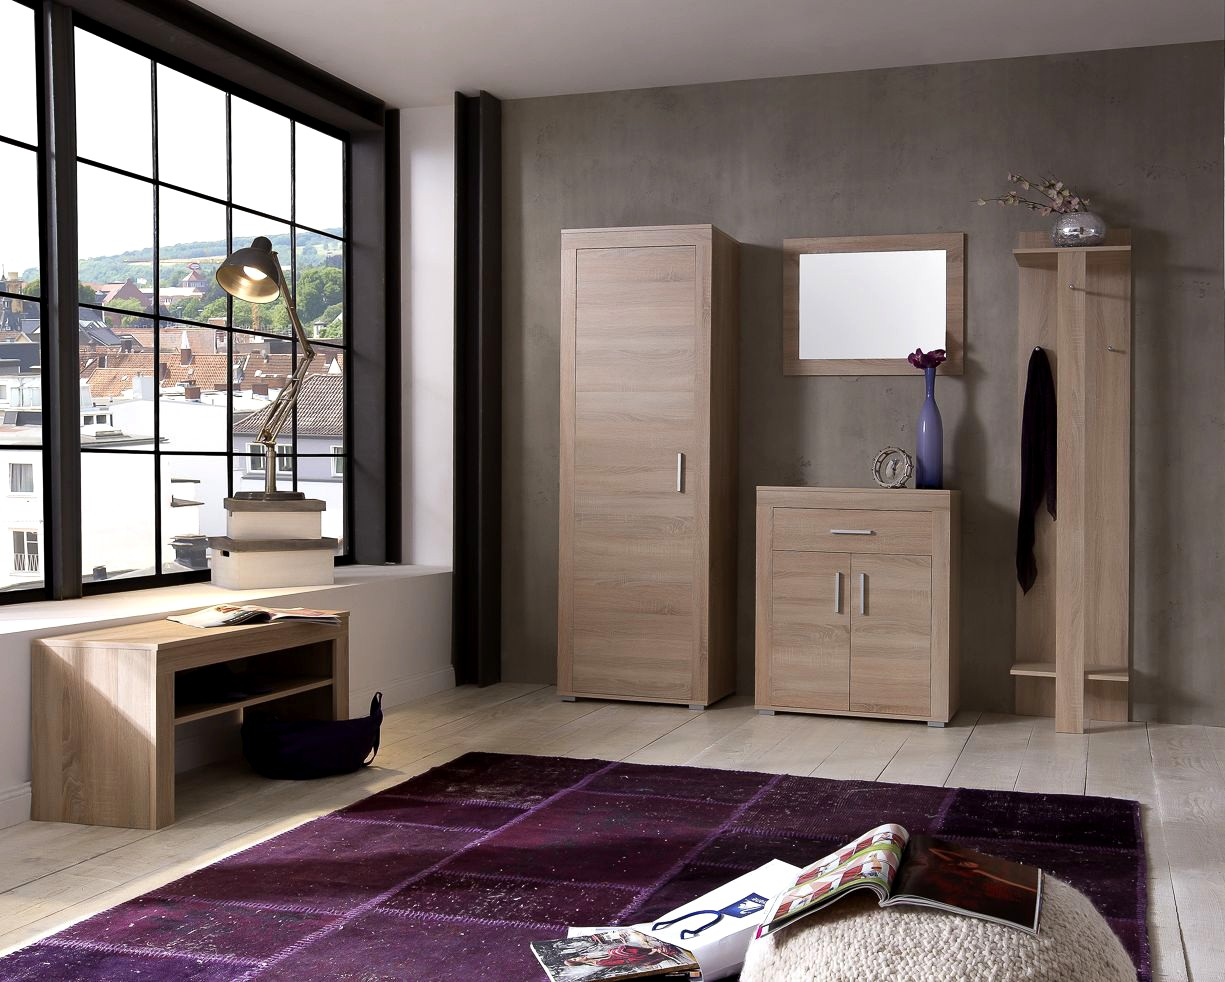 garderobenbank lake 80 cm breit eiche sonoma wohnen diele. Black Bedroom Furniture Sets. Home Design Ideas